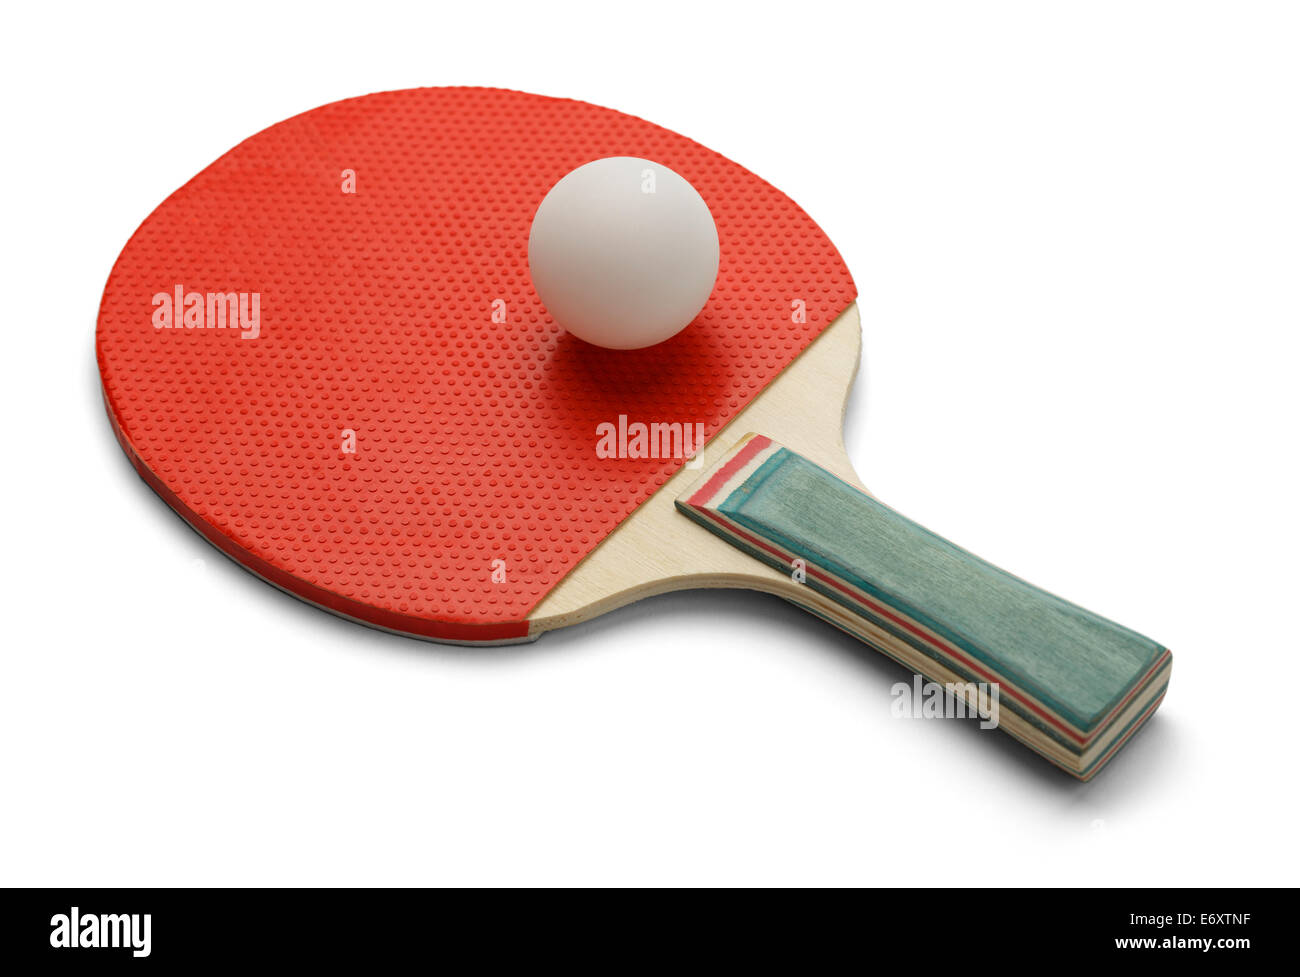 Tennis de table Raquette et balle de ping-pong isolé sur fond blanc. Photo Stock